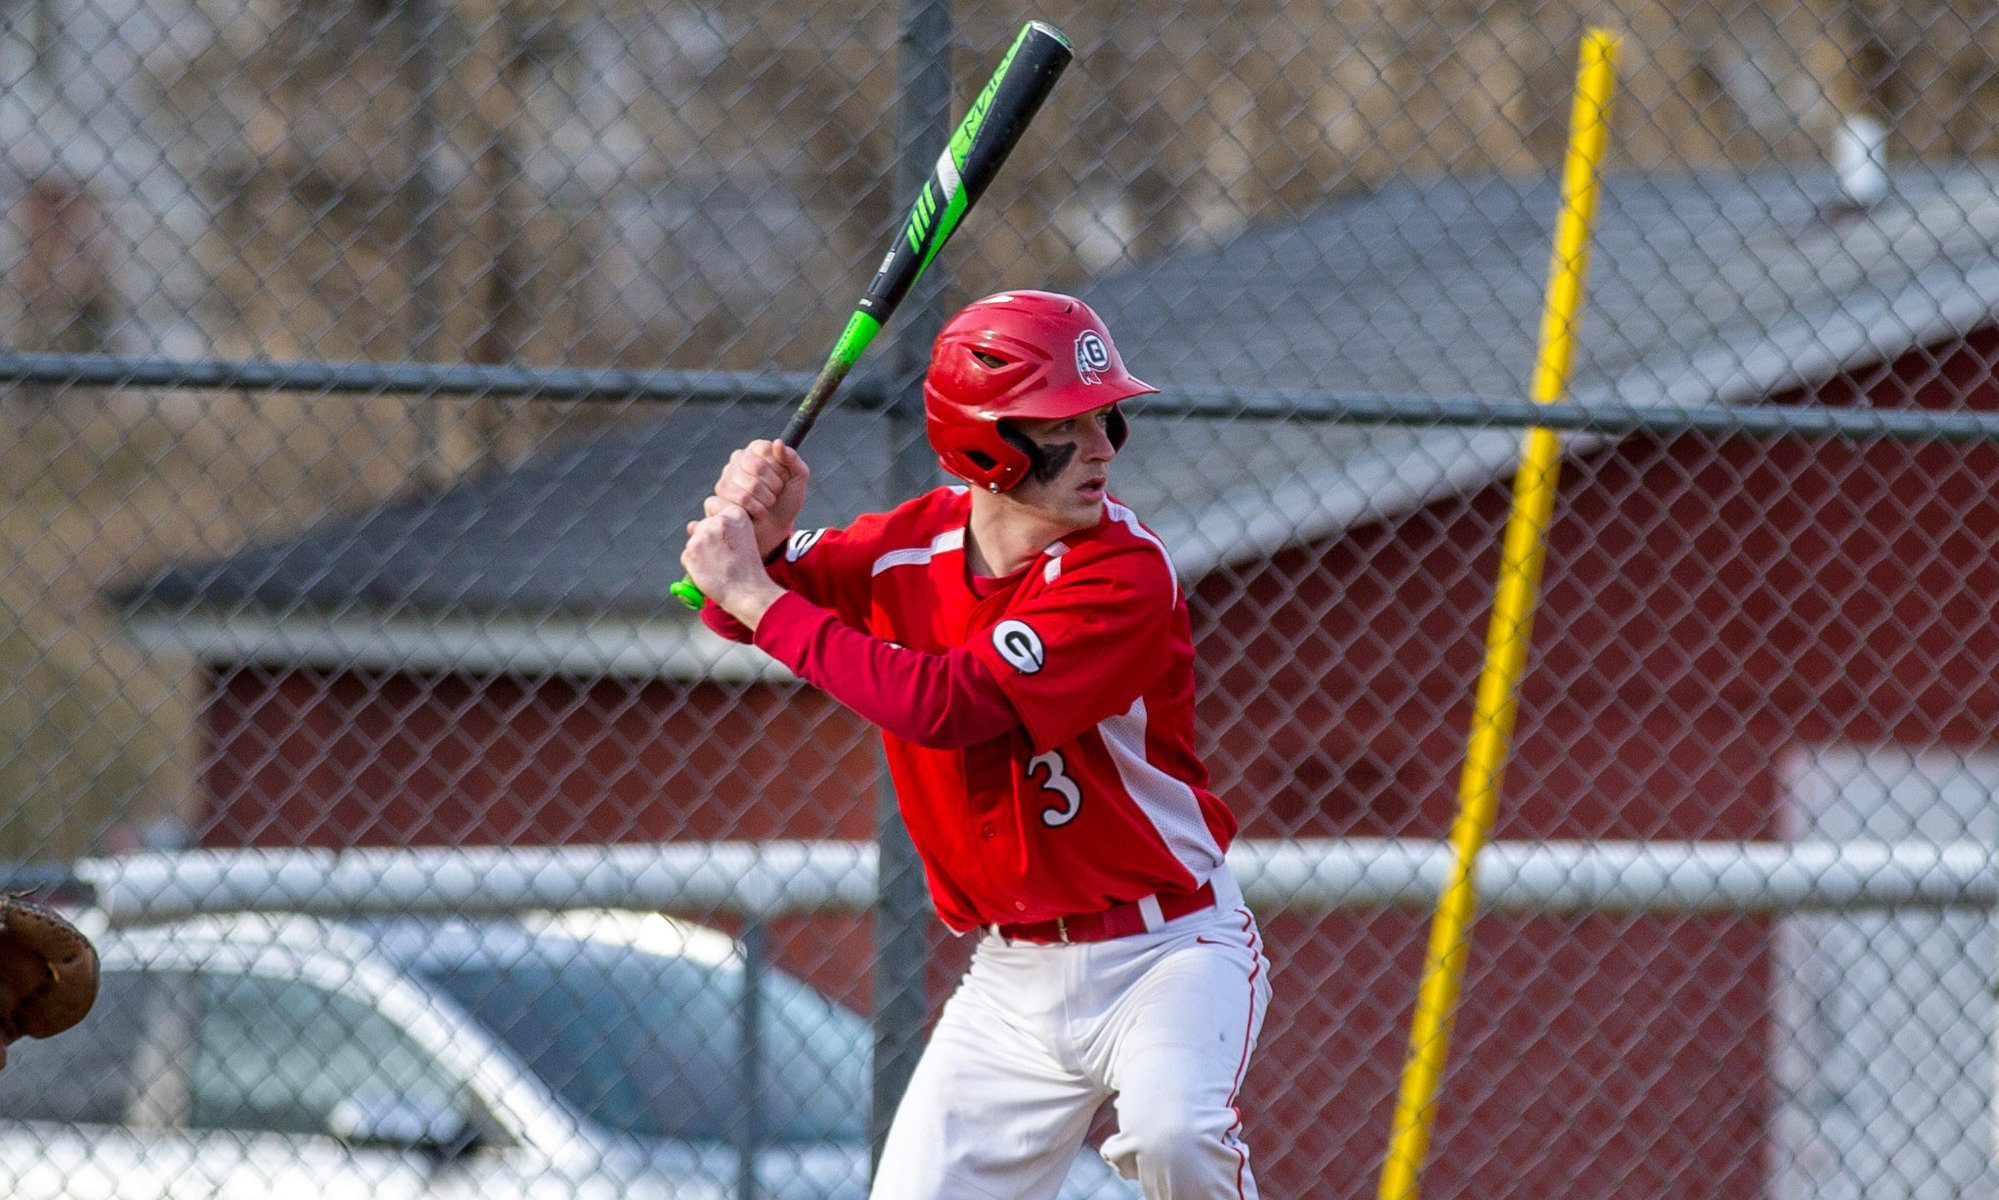 Groton senior Shane Smith swings the bat against McGraw during the 2019 season. Smith was one of five seniors set to return for Groton this year before the season was canceled.